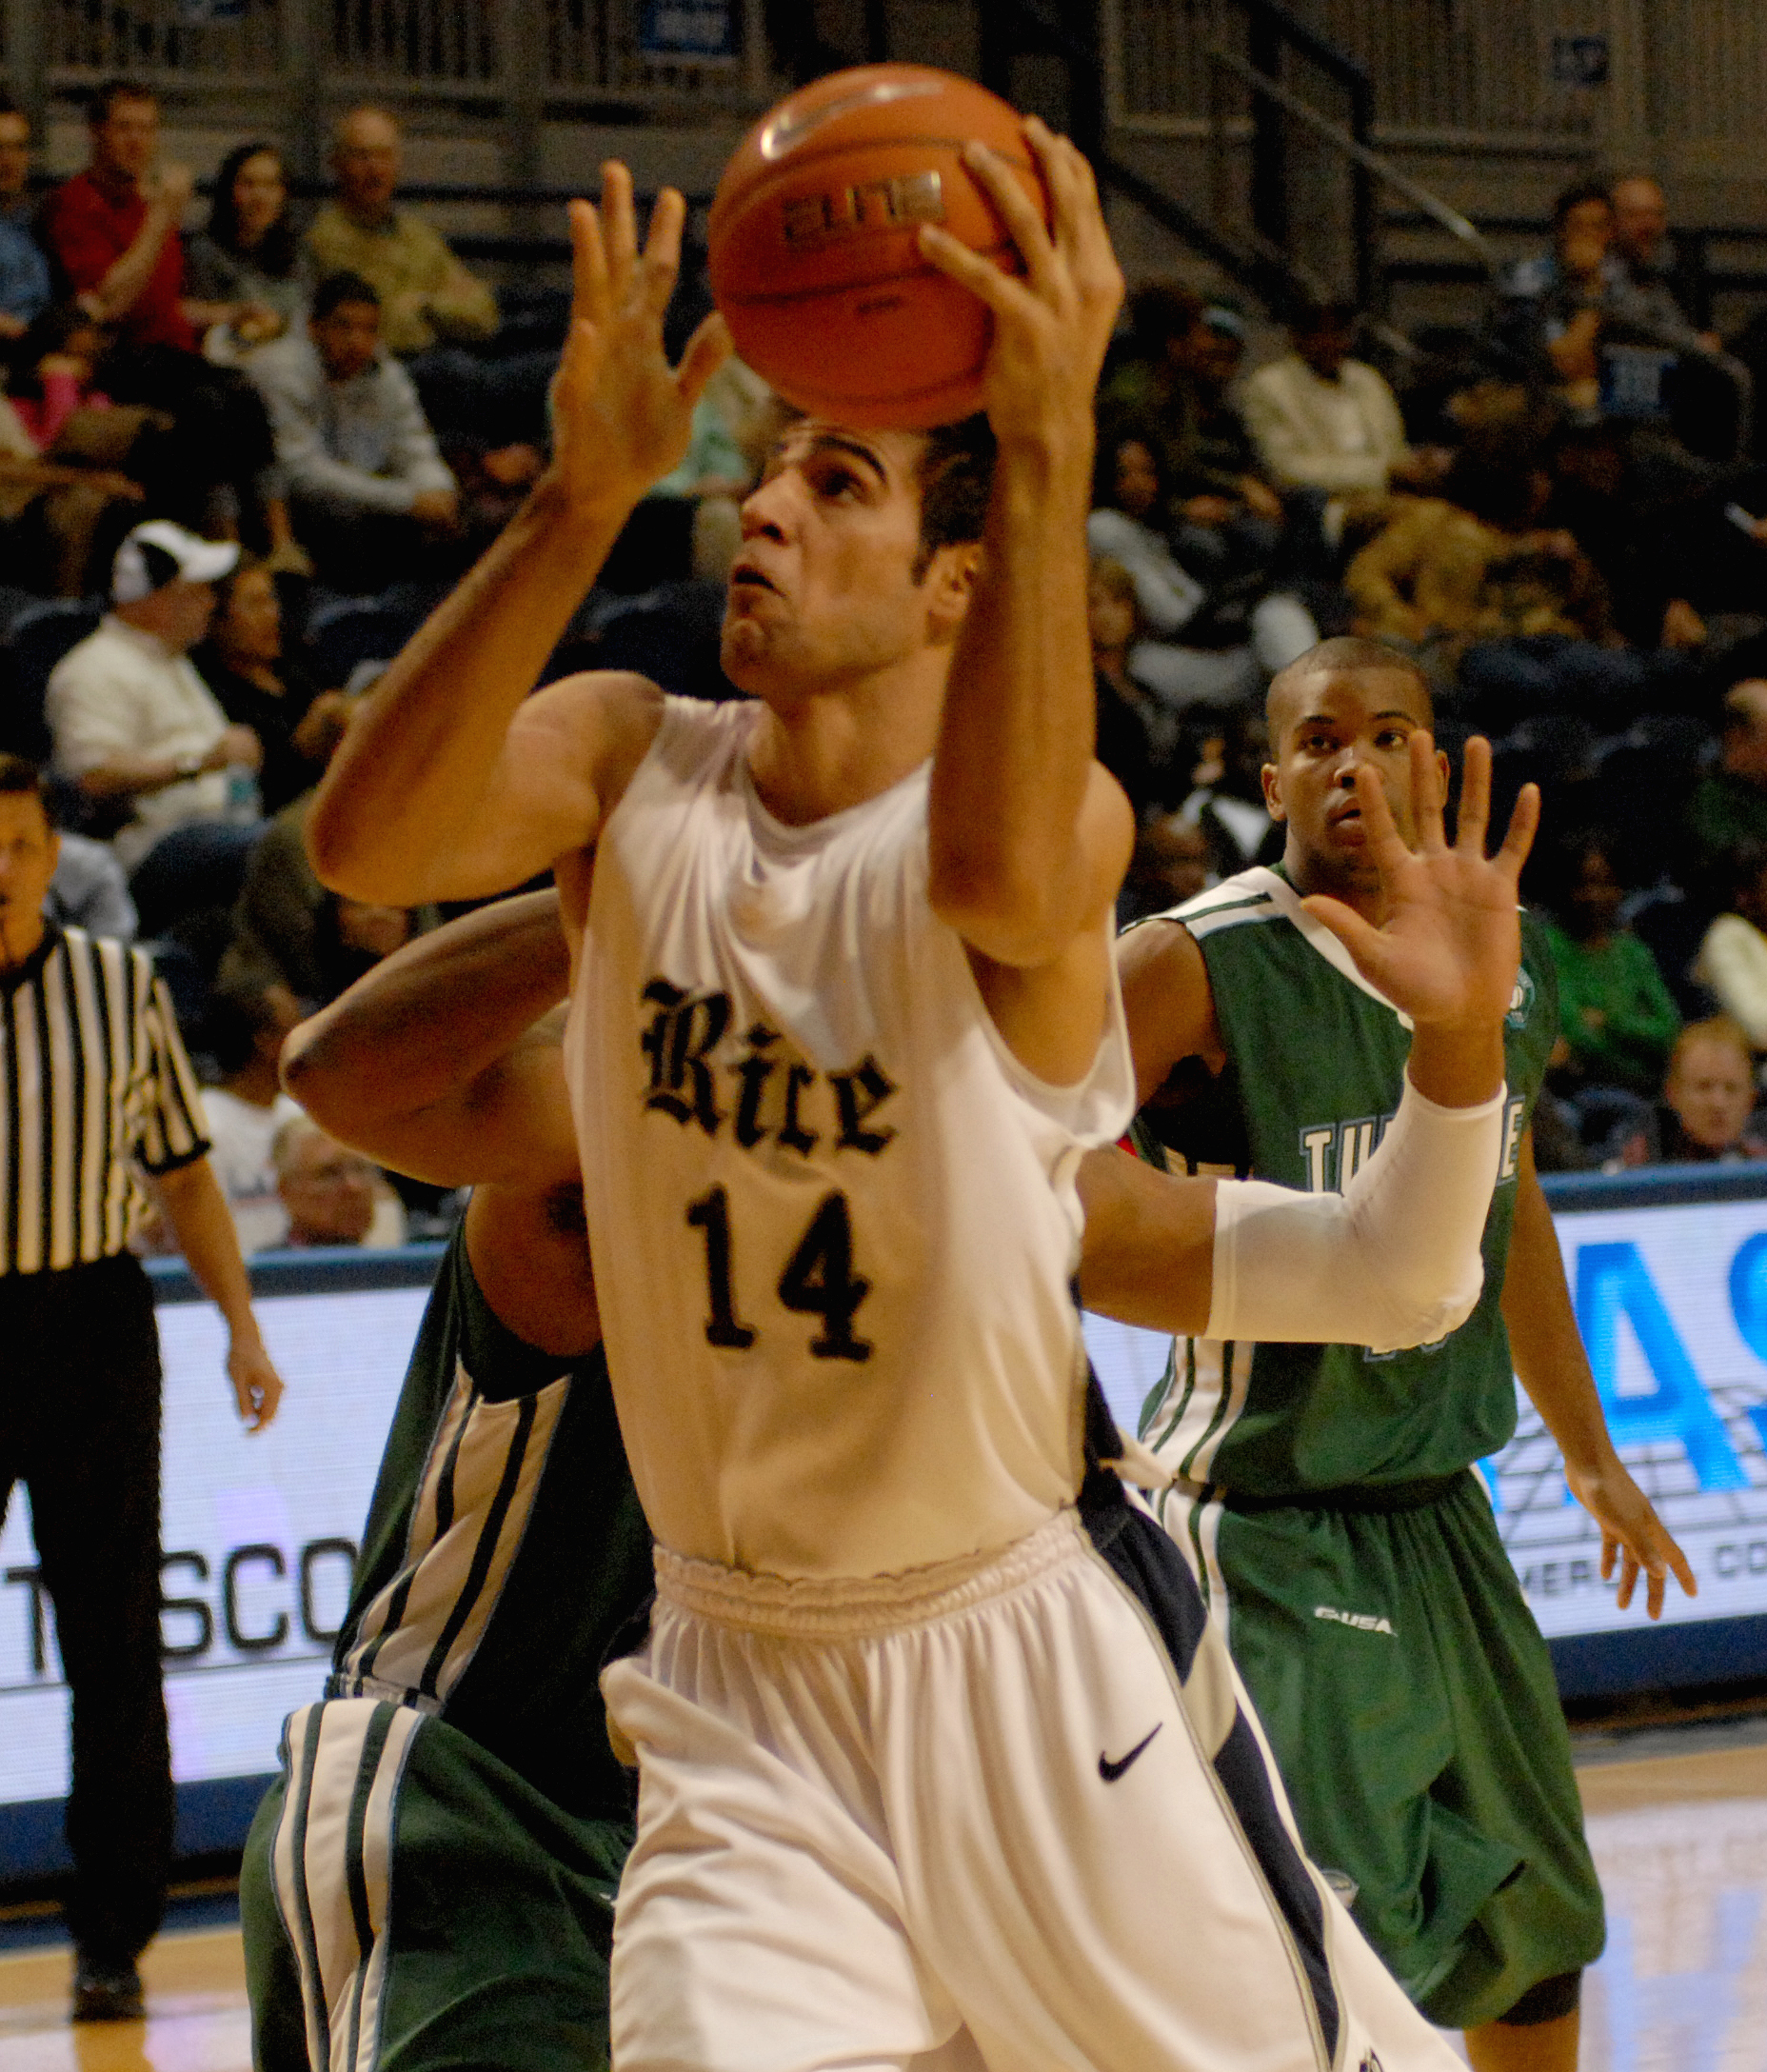 Arsalan Kazemi scored a career-high 28 points in the Owls' loss to Tulane.